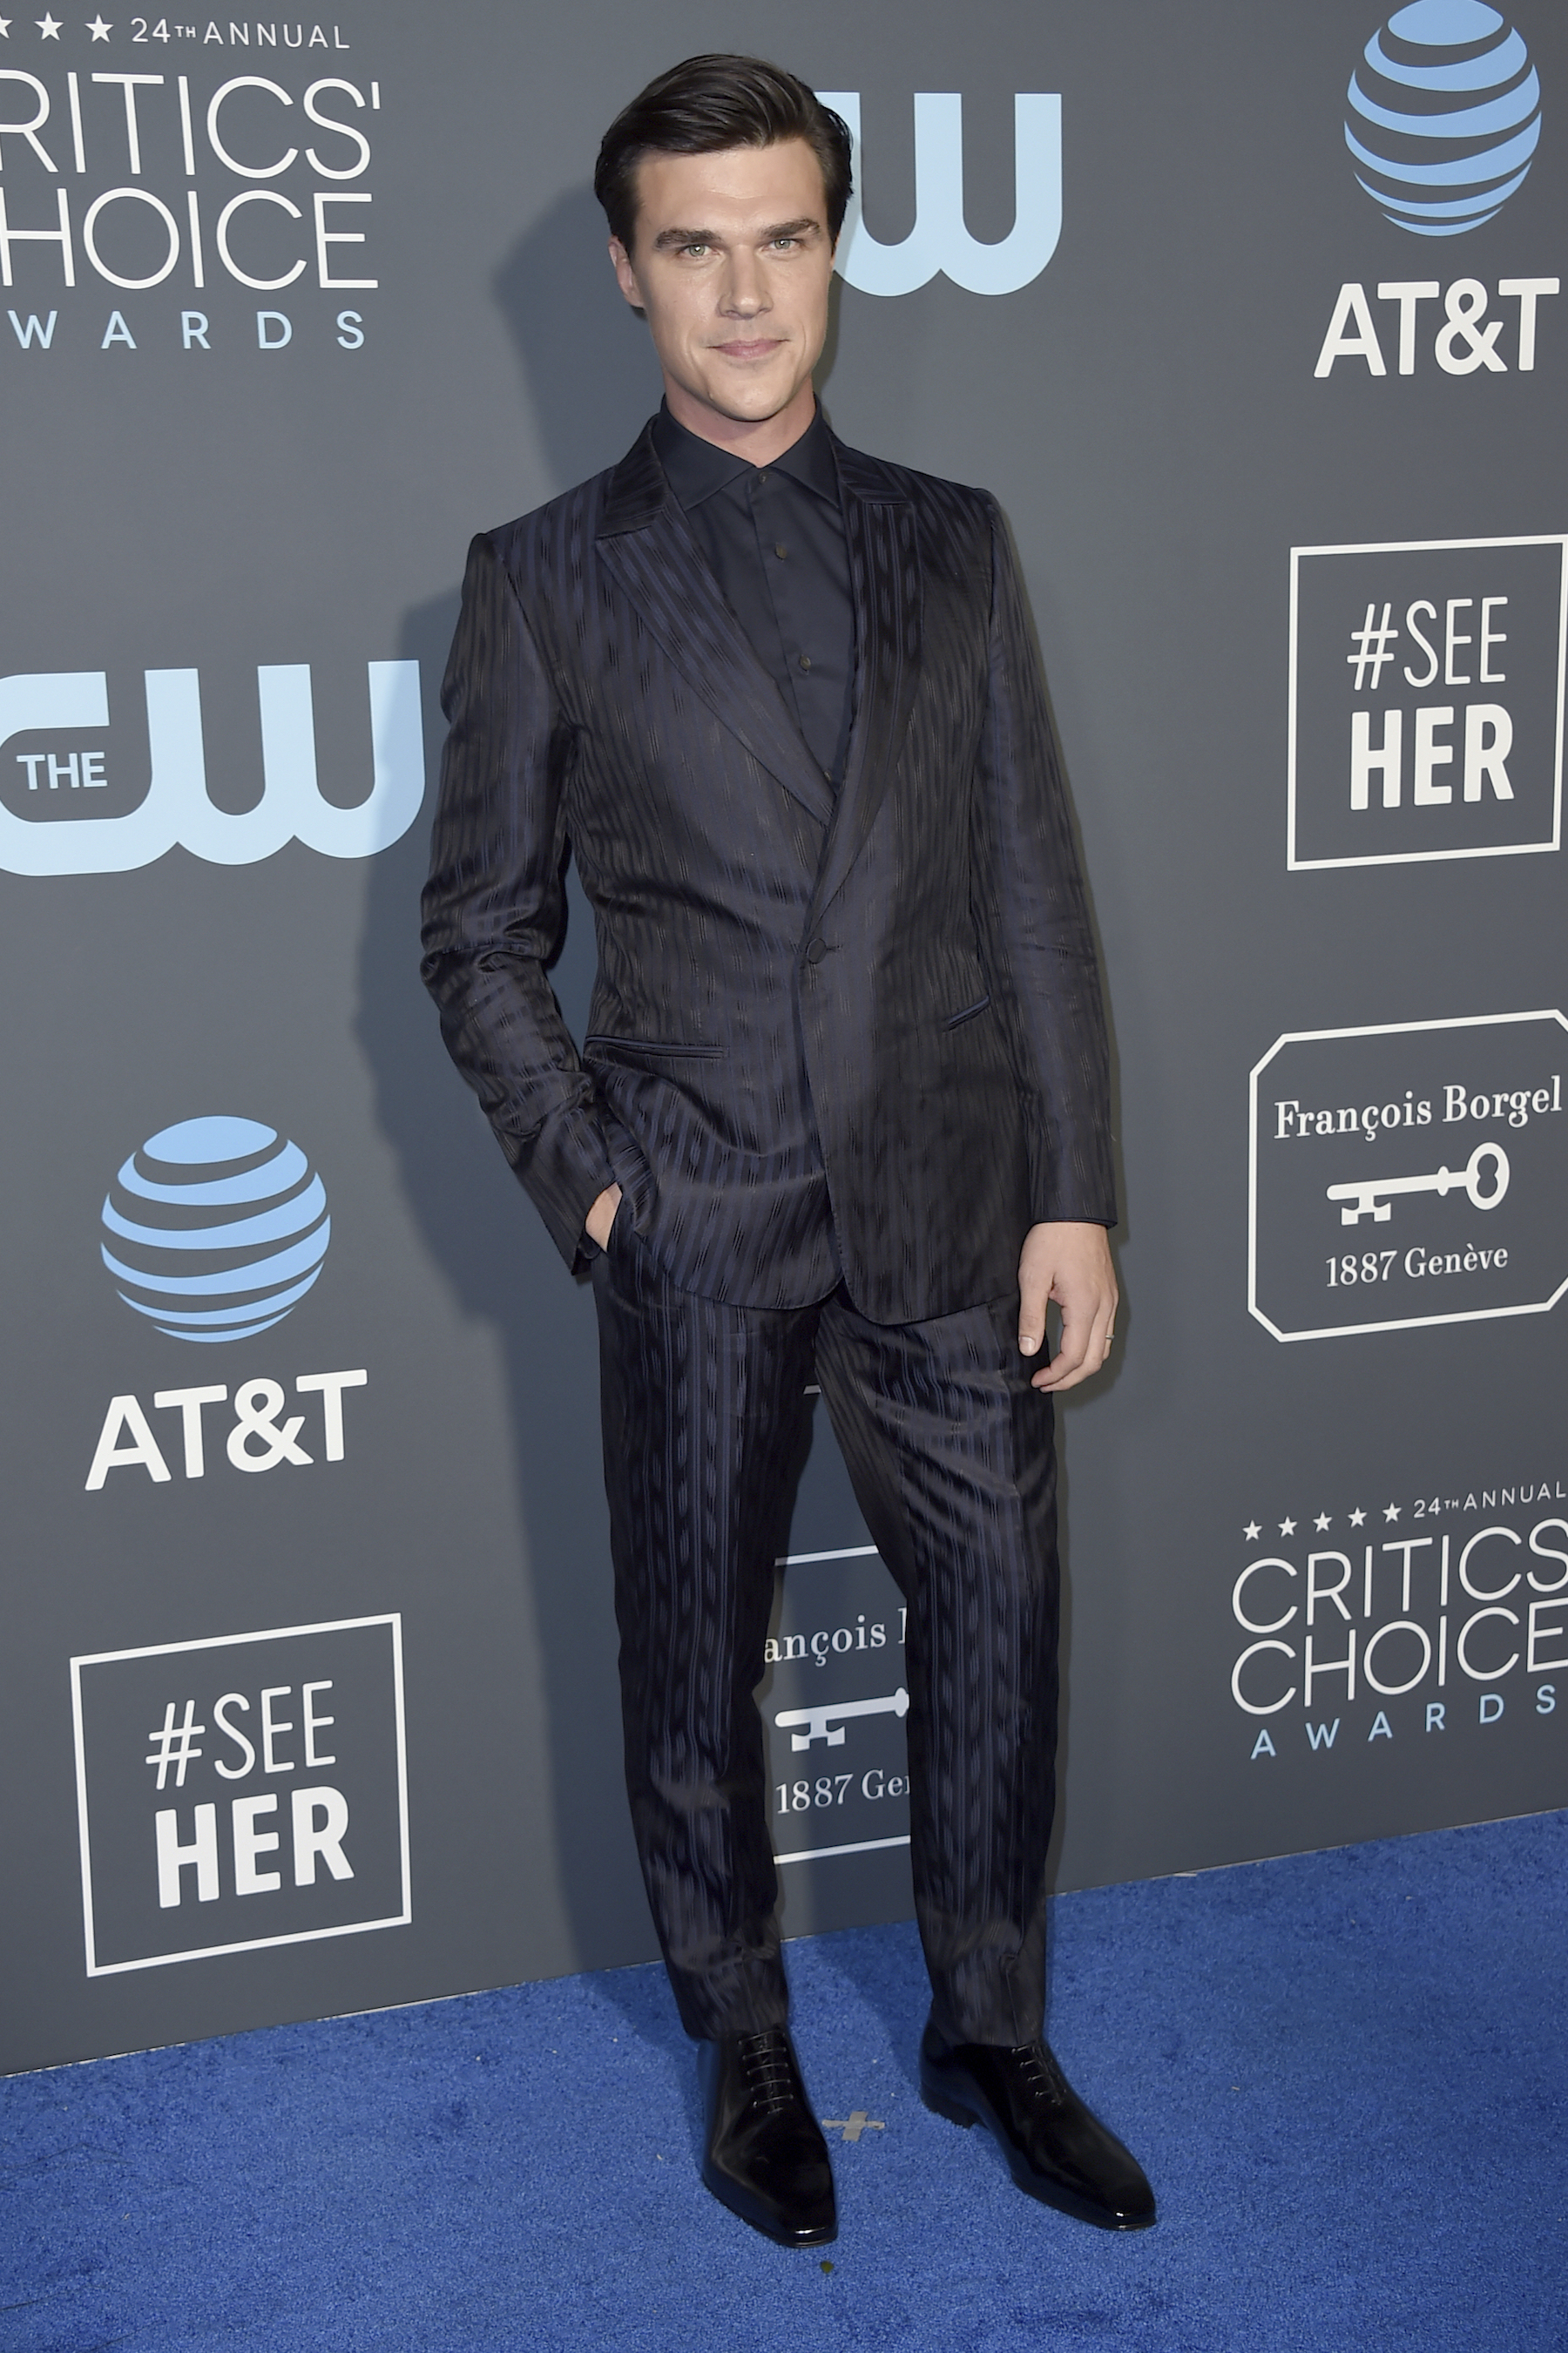 <div class='meta'><div class='origin-logo' data-origin='AP'></div><span class='caption-text' data-credit='Jordan Strauss/Invision/AP'>Finn Wittrock arrives at the 24th annual Critics' Choice Awards on Sunday, Jan. 13, 2019, at the Barker Hangar in Santa Monica, Calif.</span></div>